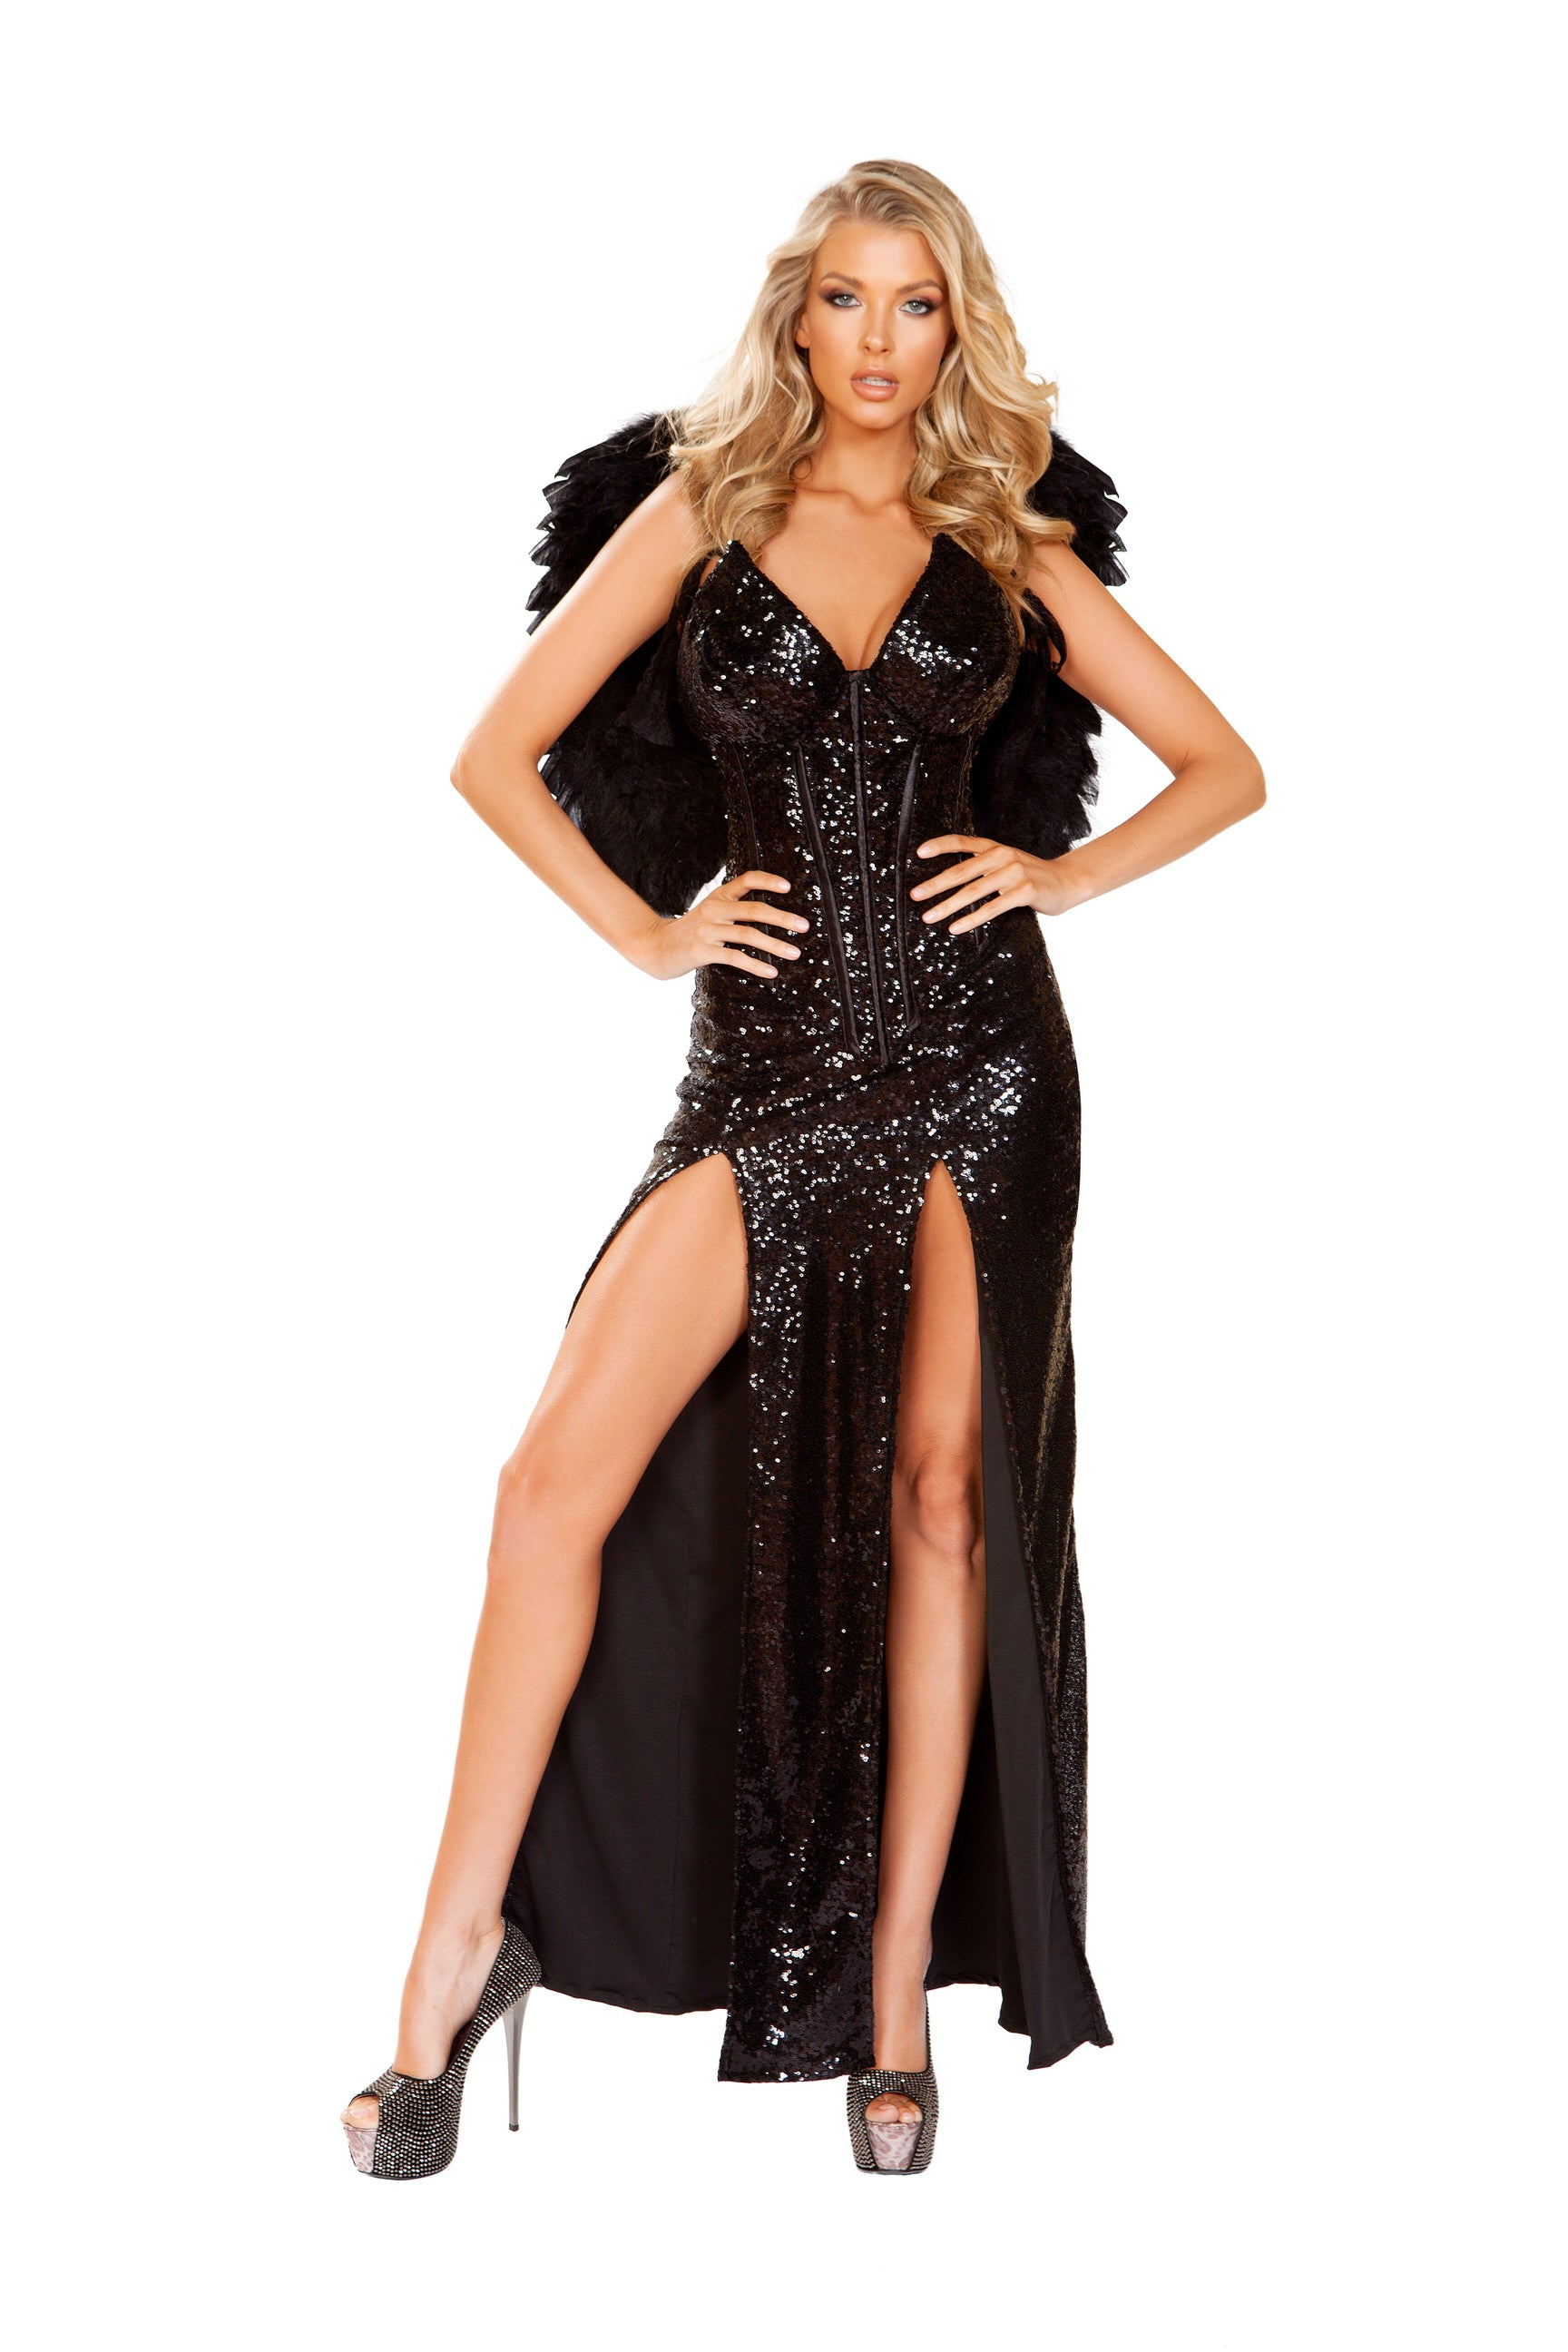 4912 - 2pc Wicked Dark Angel